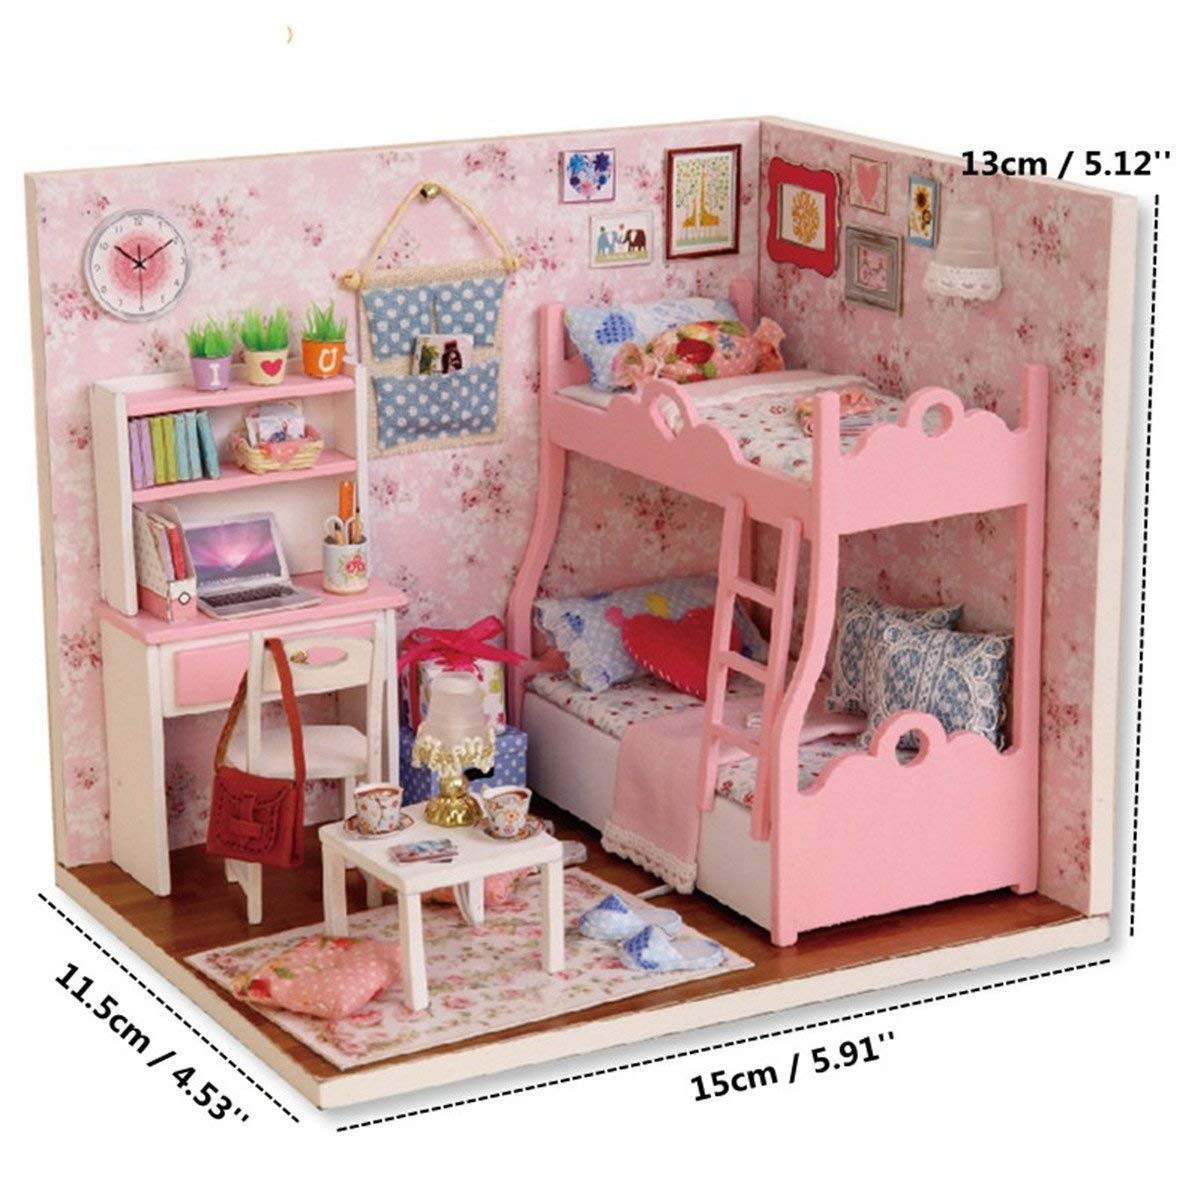 Doll House Wiring Kits Schematic Diagrams Dollhouse Kit Uk Example Electrical Diagram U2022 Lighting